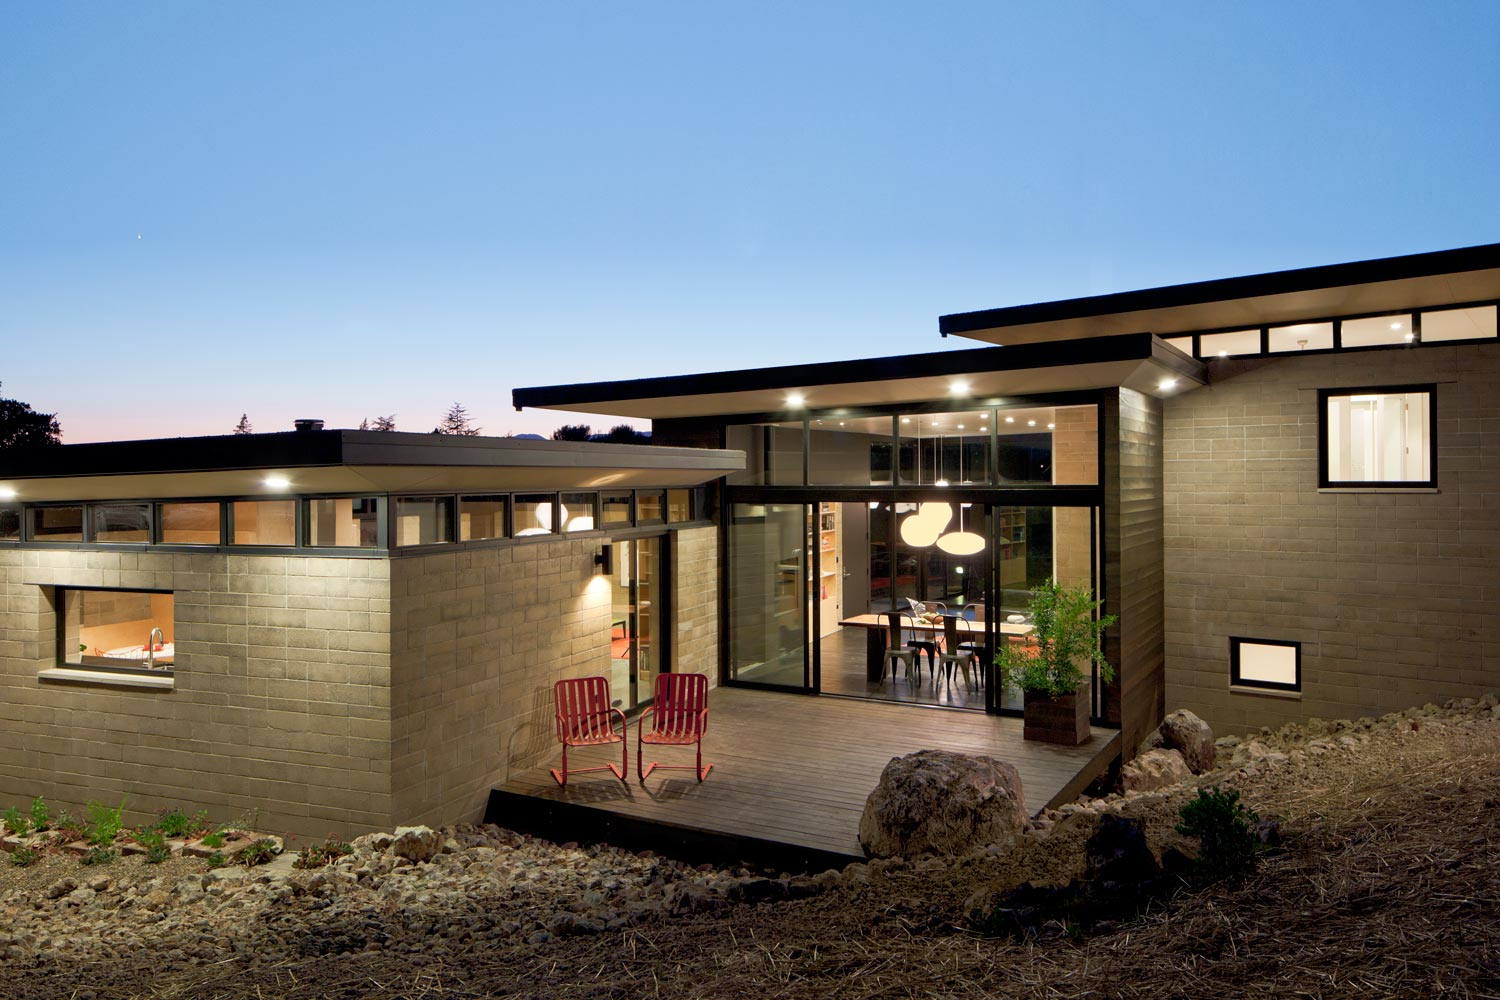 Rammed Earth Works - Original Builders - Consulting Services on roof house designs, architectural house designs, log house designs, cement house designs, permaculture house designs, shipping containers house designs, cob house designs, green architecture house designs, eco-block house designs, earth sheltered house designs, masonry house designs, adobe house designs, mud house designs, house house designs, hydraform house designs, adobe style homes designs, passive house designs, ferrocement house designs, construction house designs,